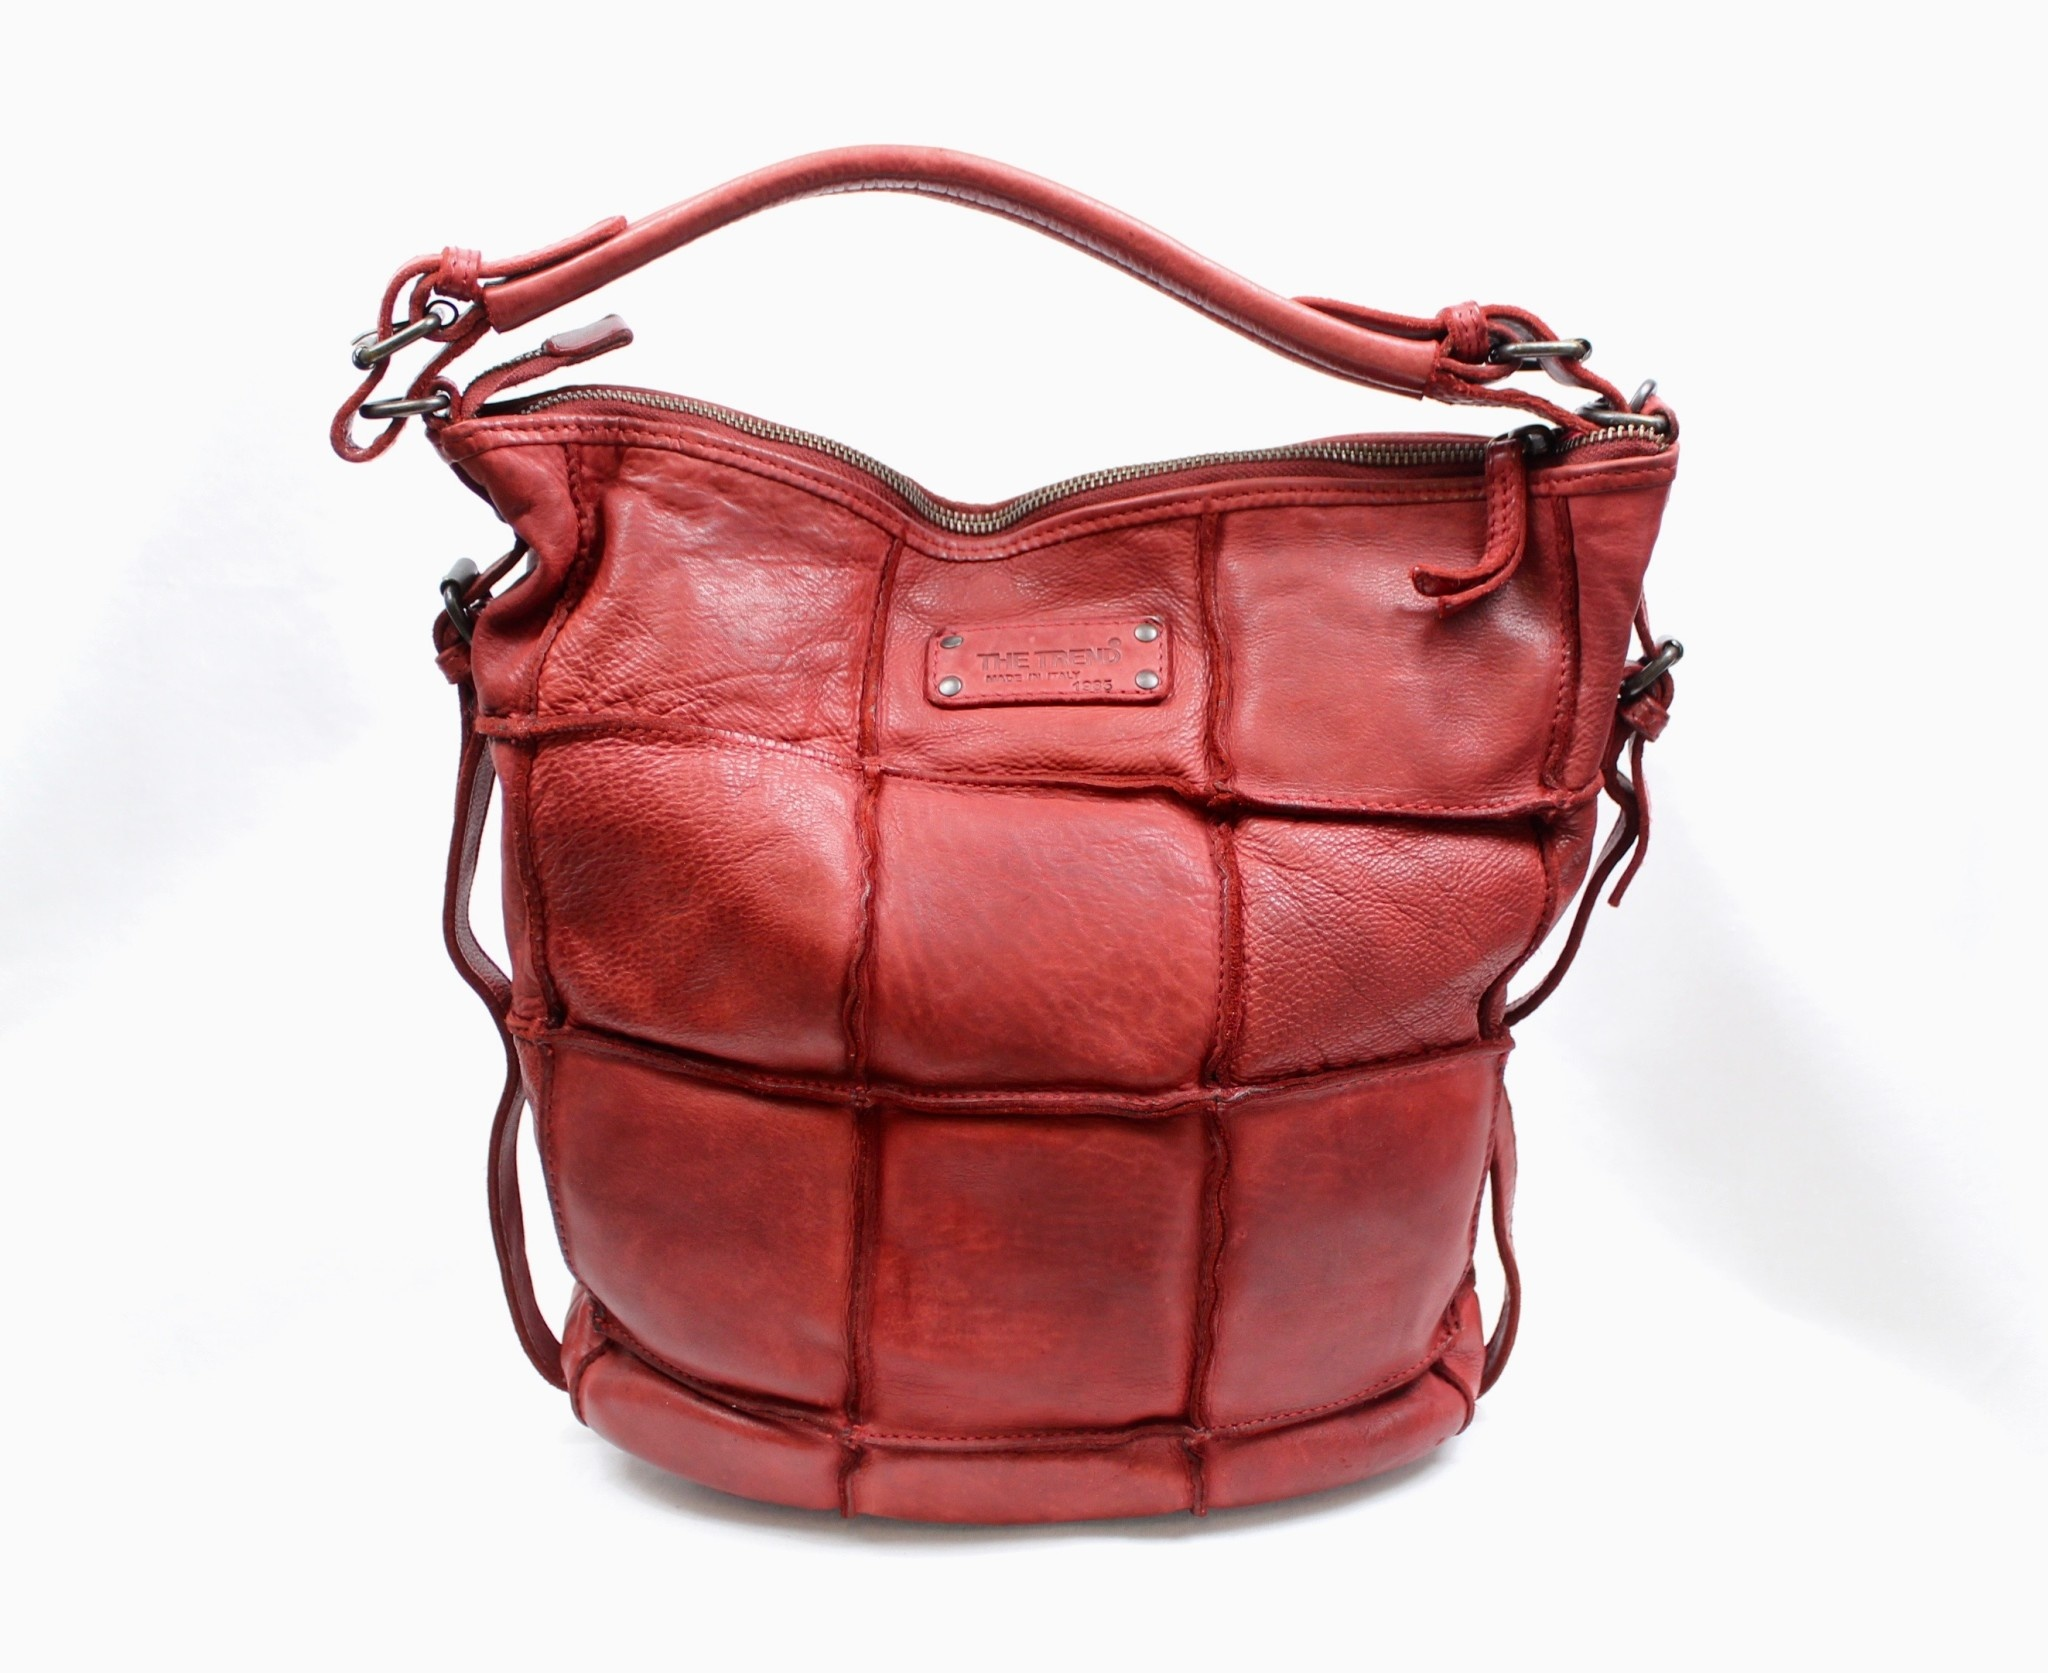 THE TREND THE TREND 24394 Red Leather Hobo Handbag